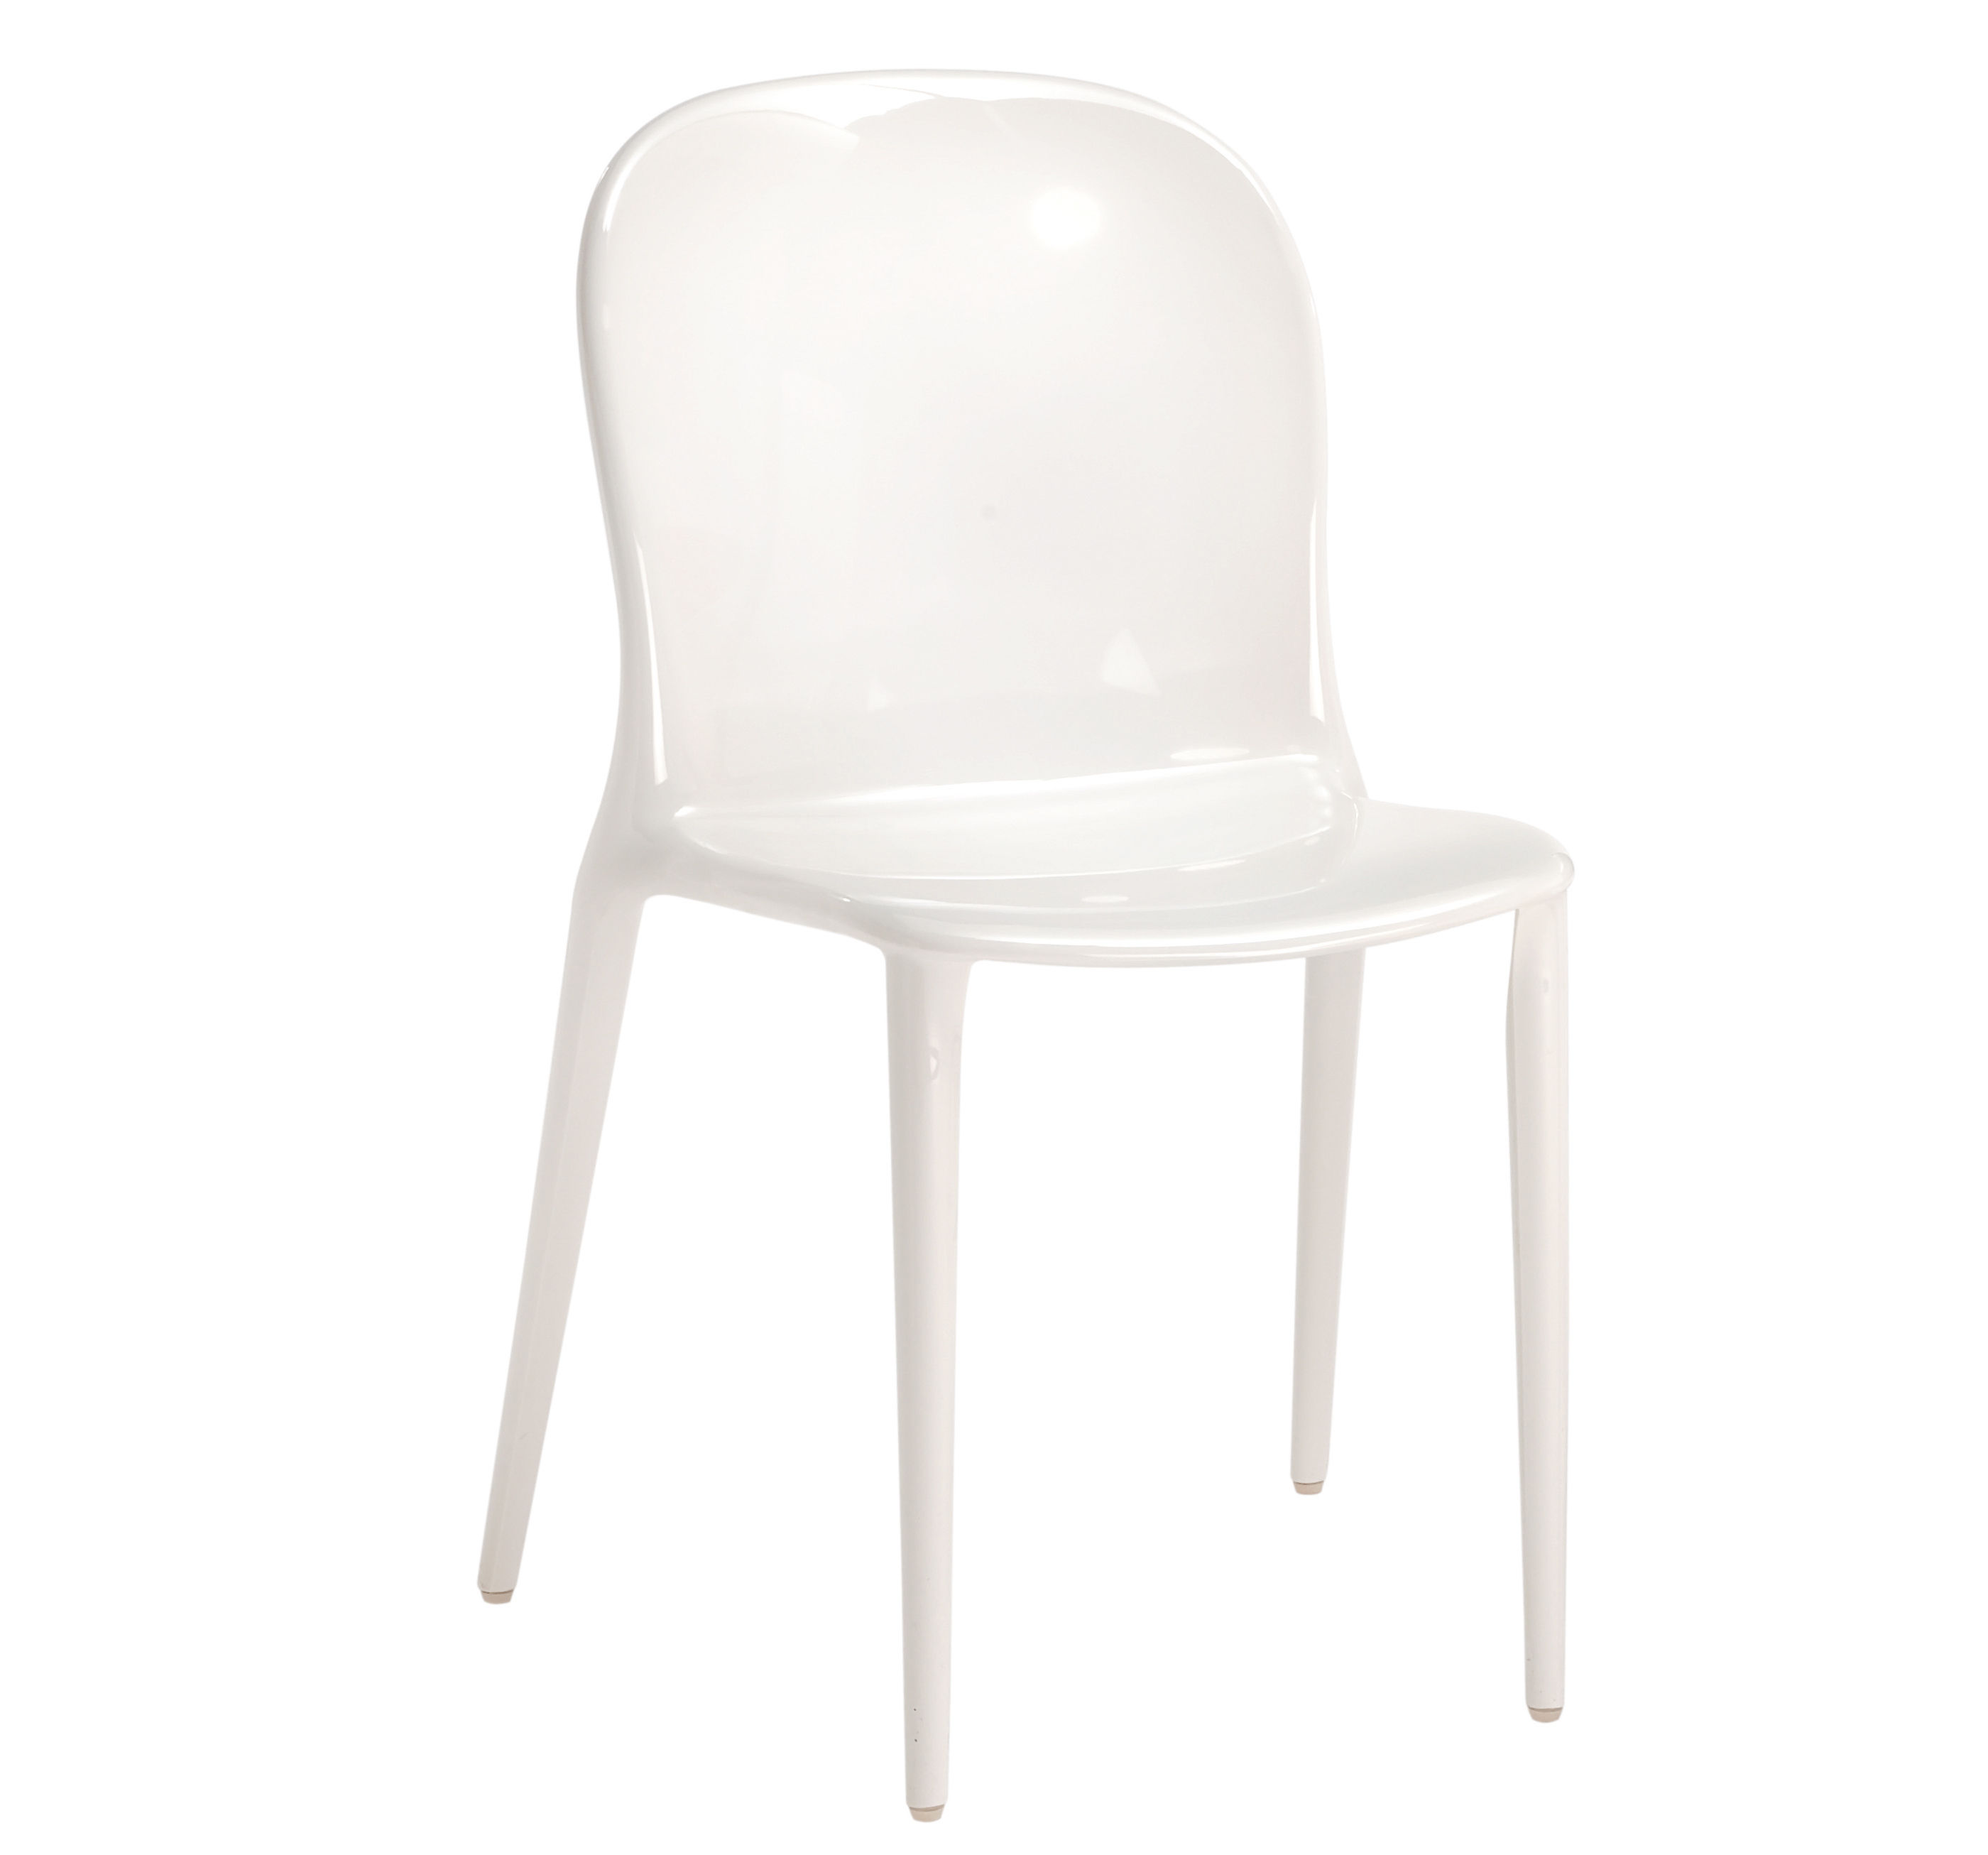 Chaises En Polycarbonate Chaise Empilable Thalya Opaque Polycarbonate Kartell